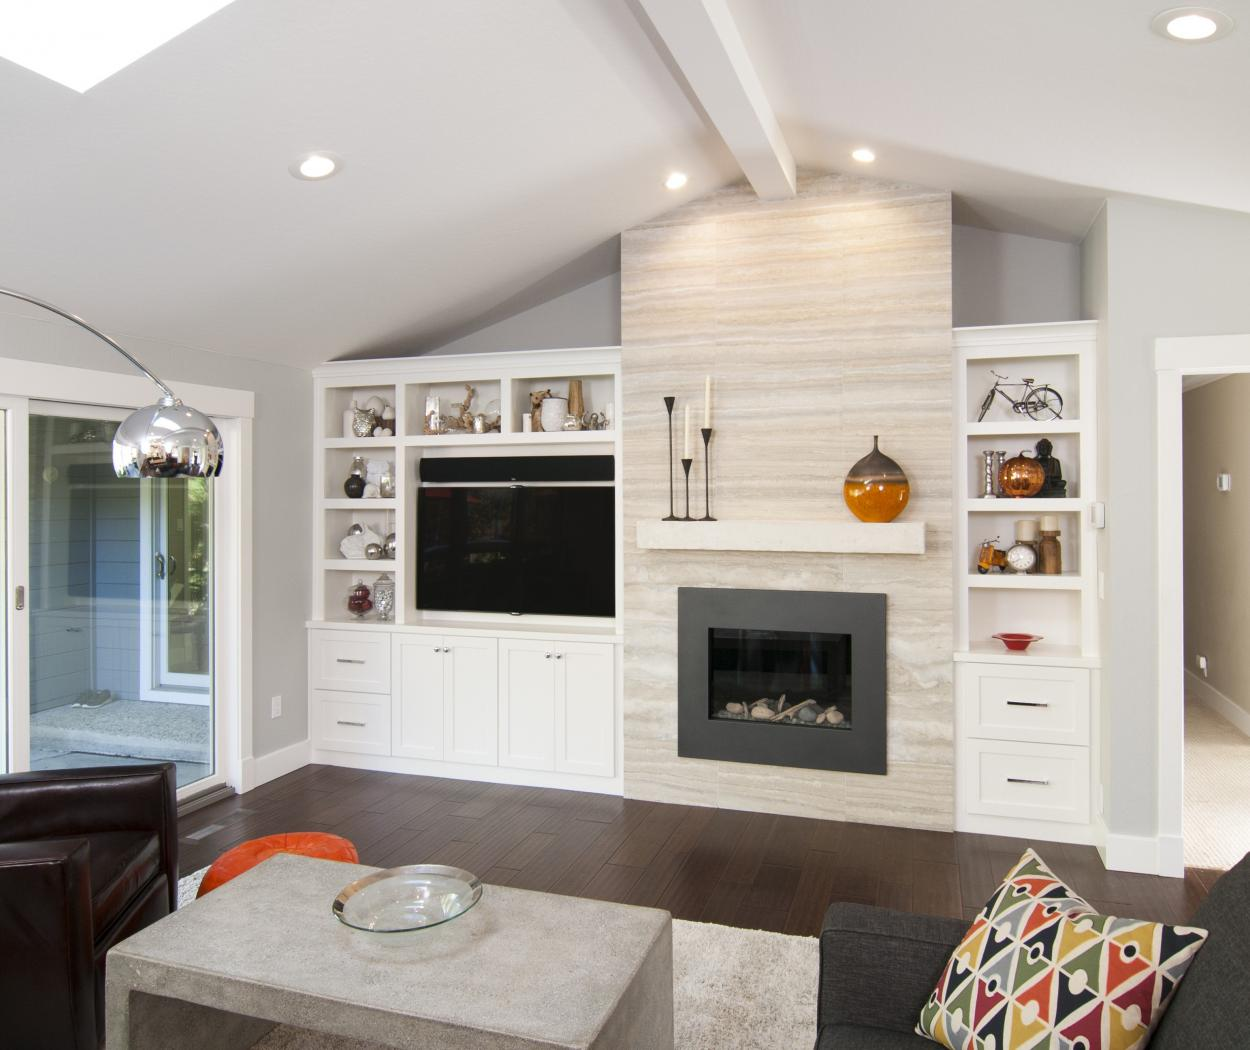 White Transitional, Shaker Style Entertainment Center with Open Shelves and Chrome Hardware Pulls